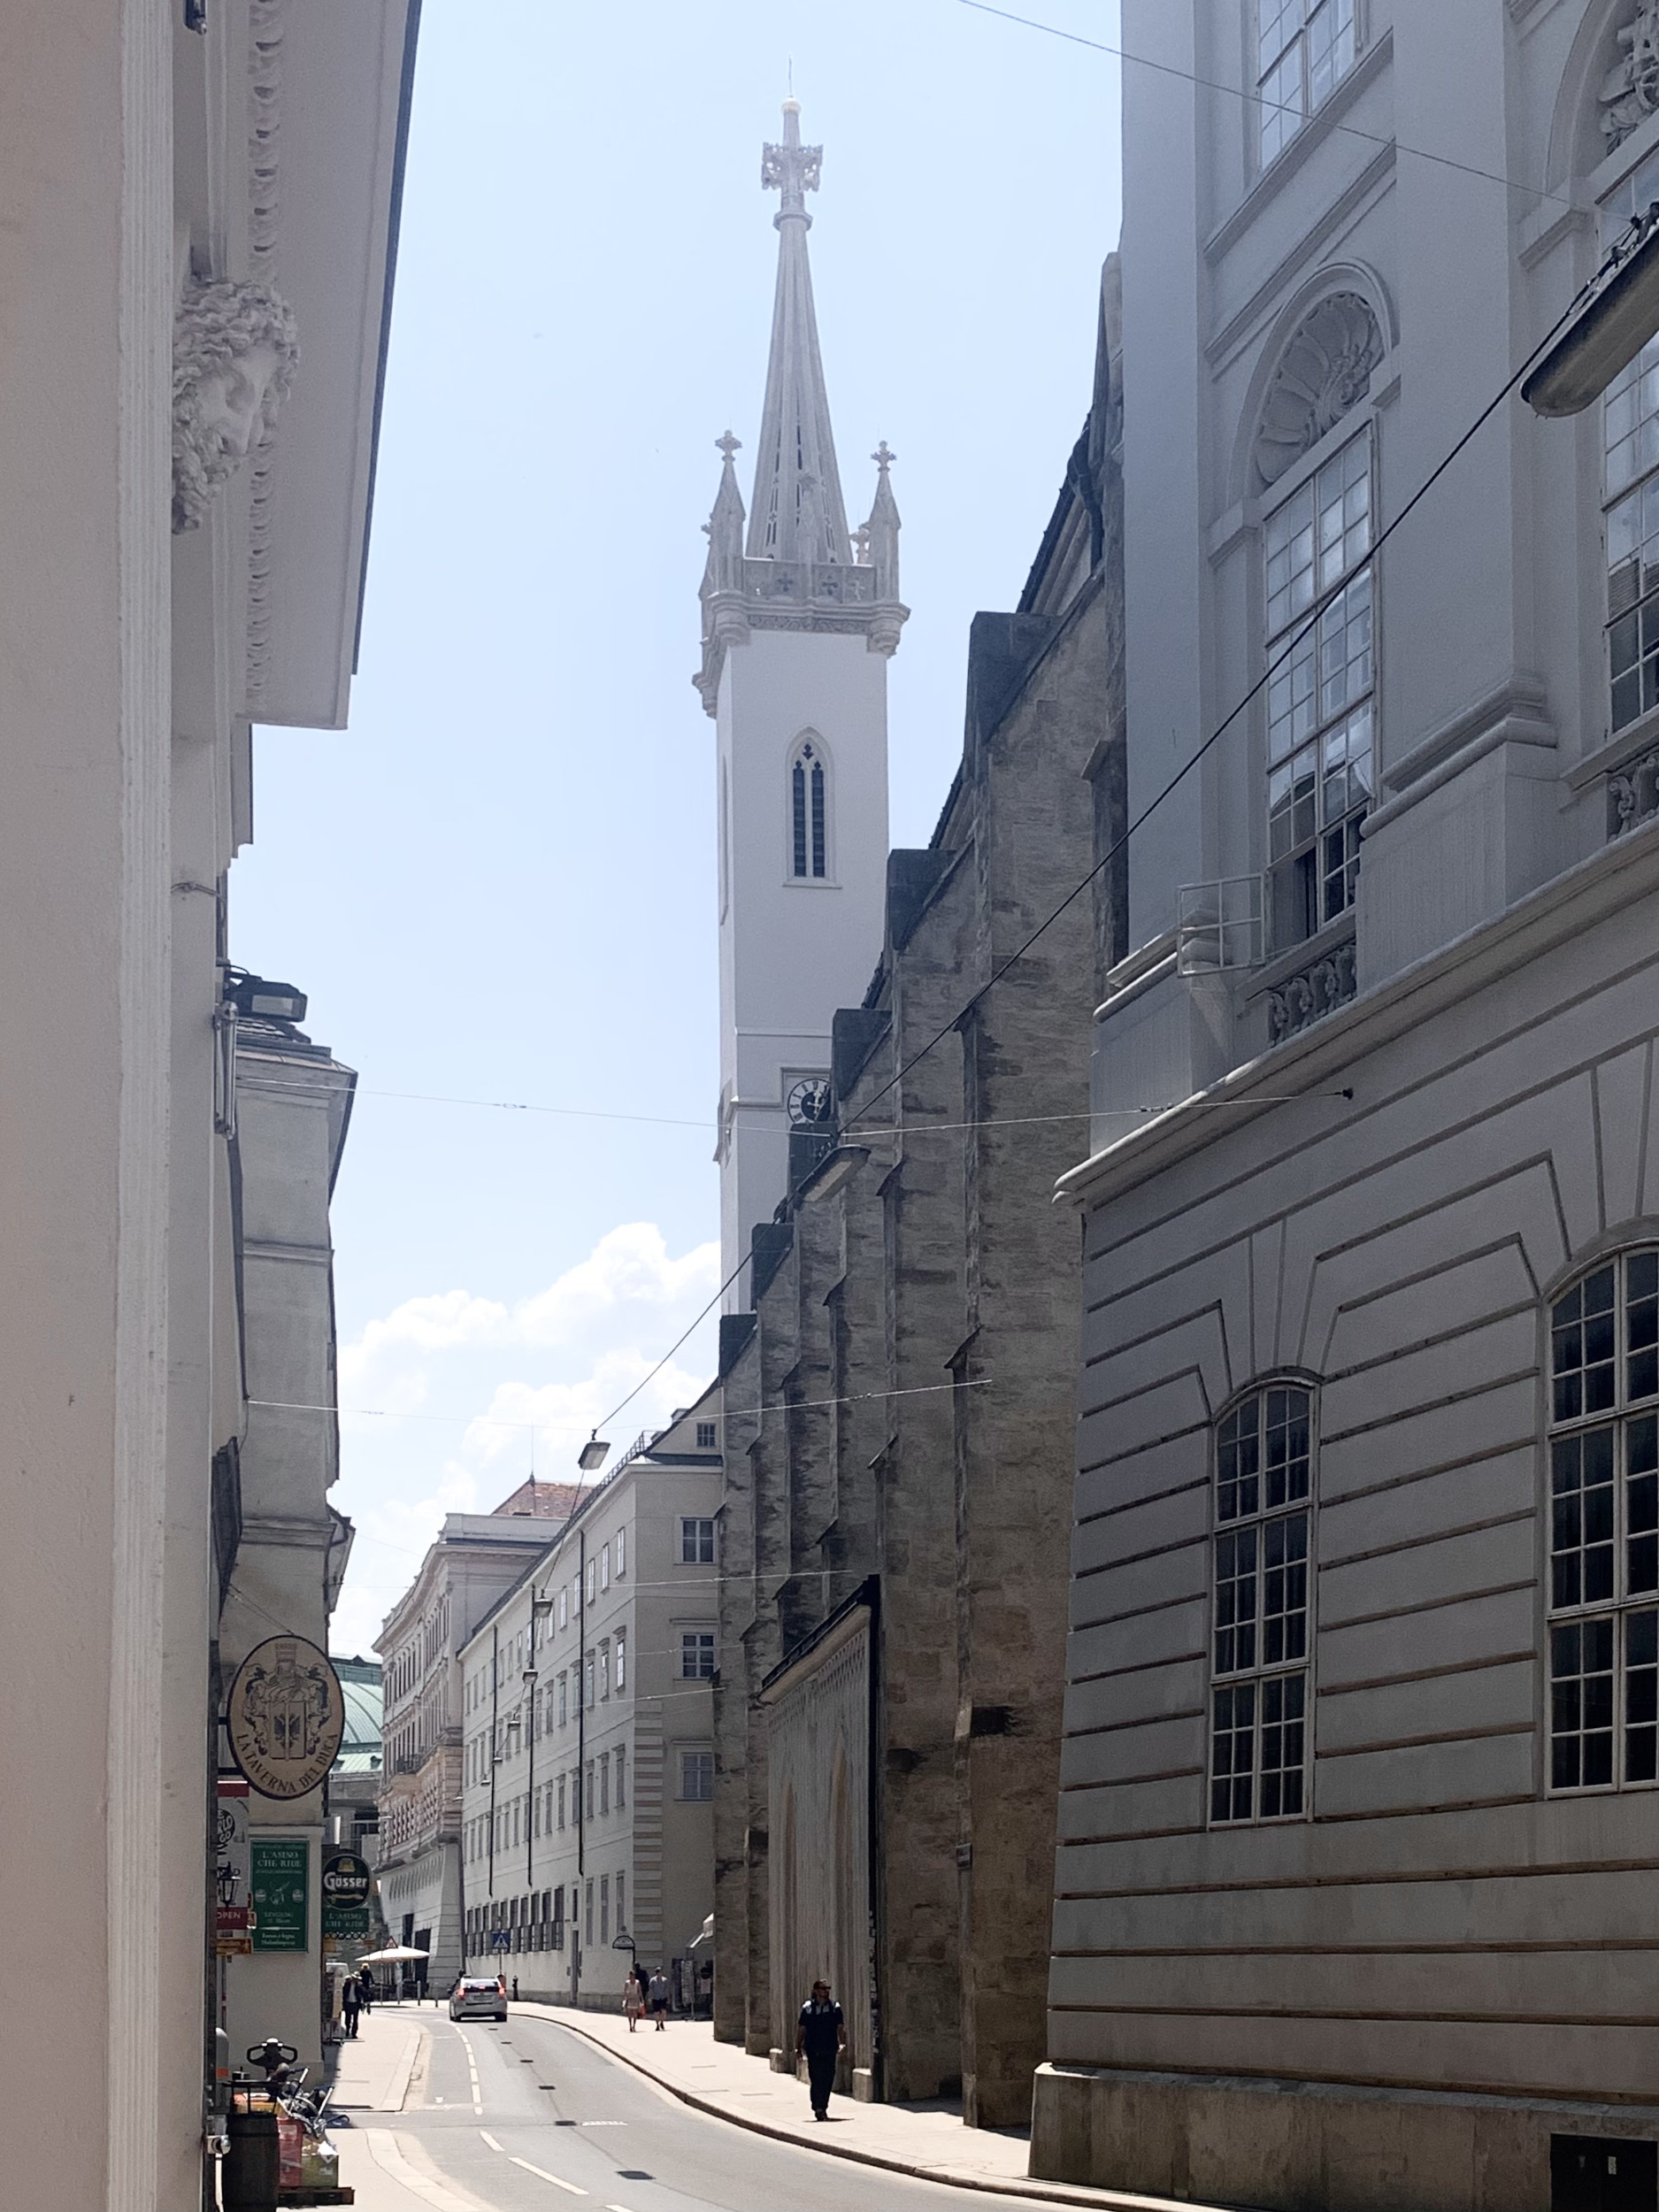 Eastern side Facing Augustinerstraße and Tower of Augustinian Church